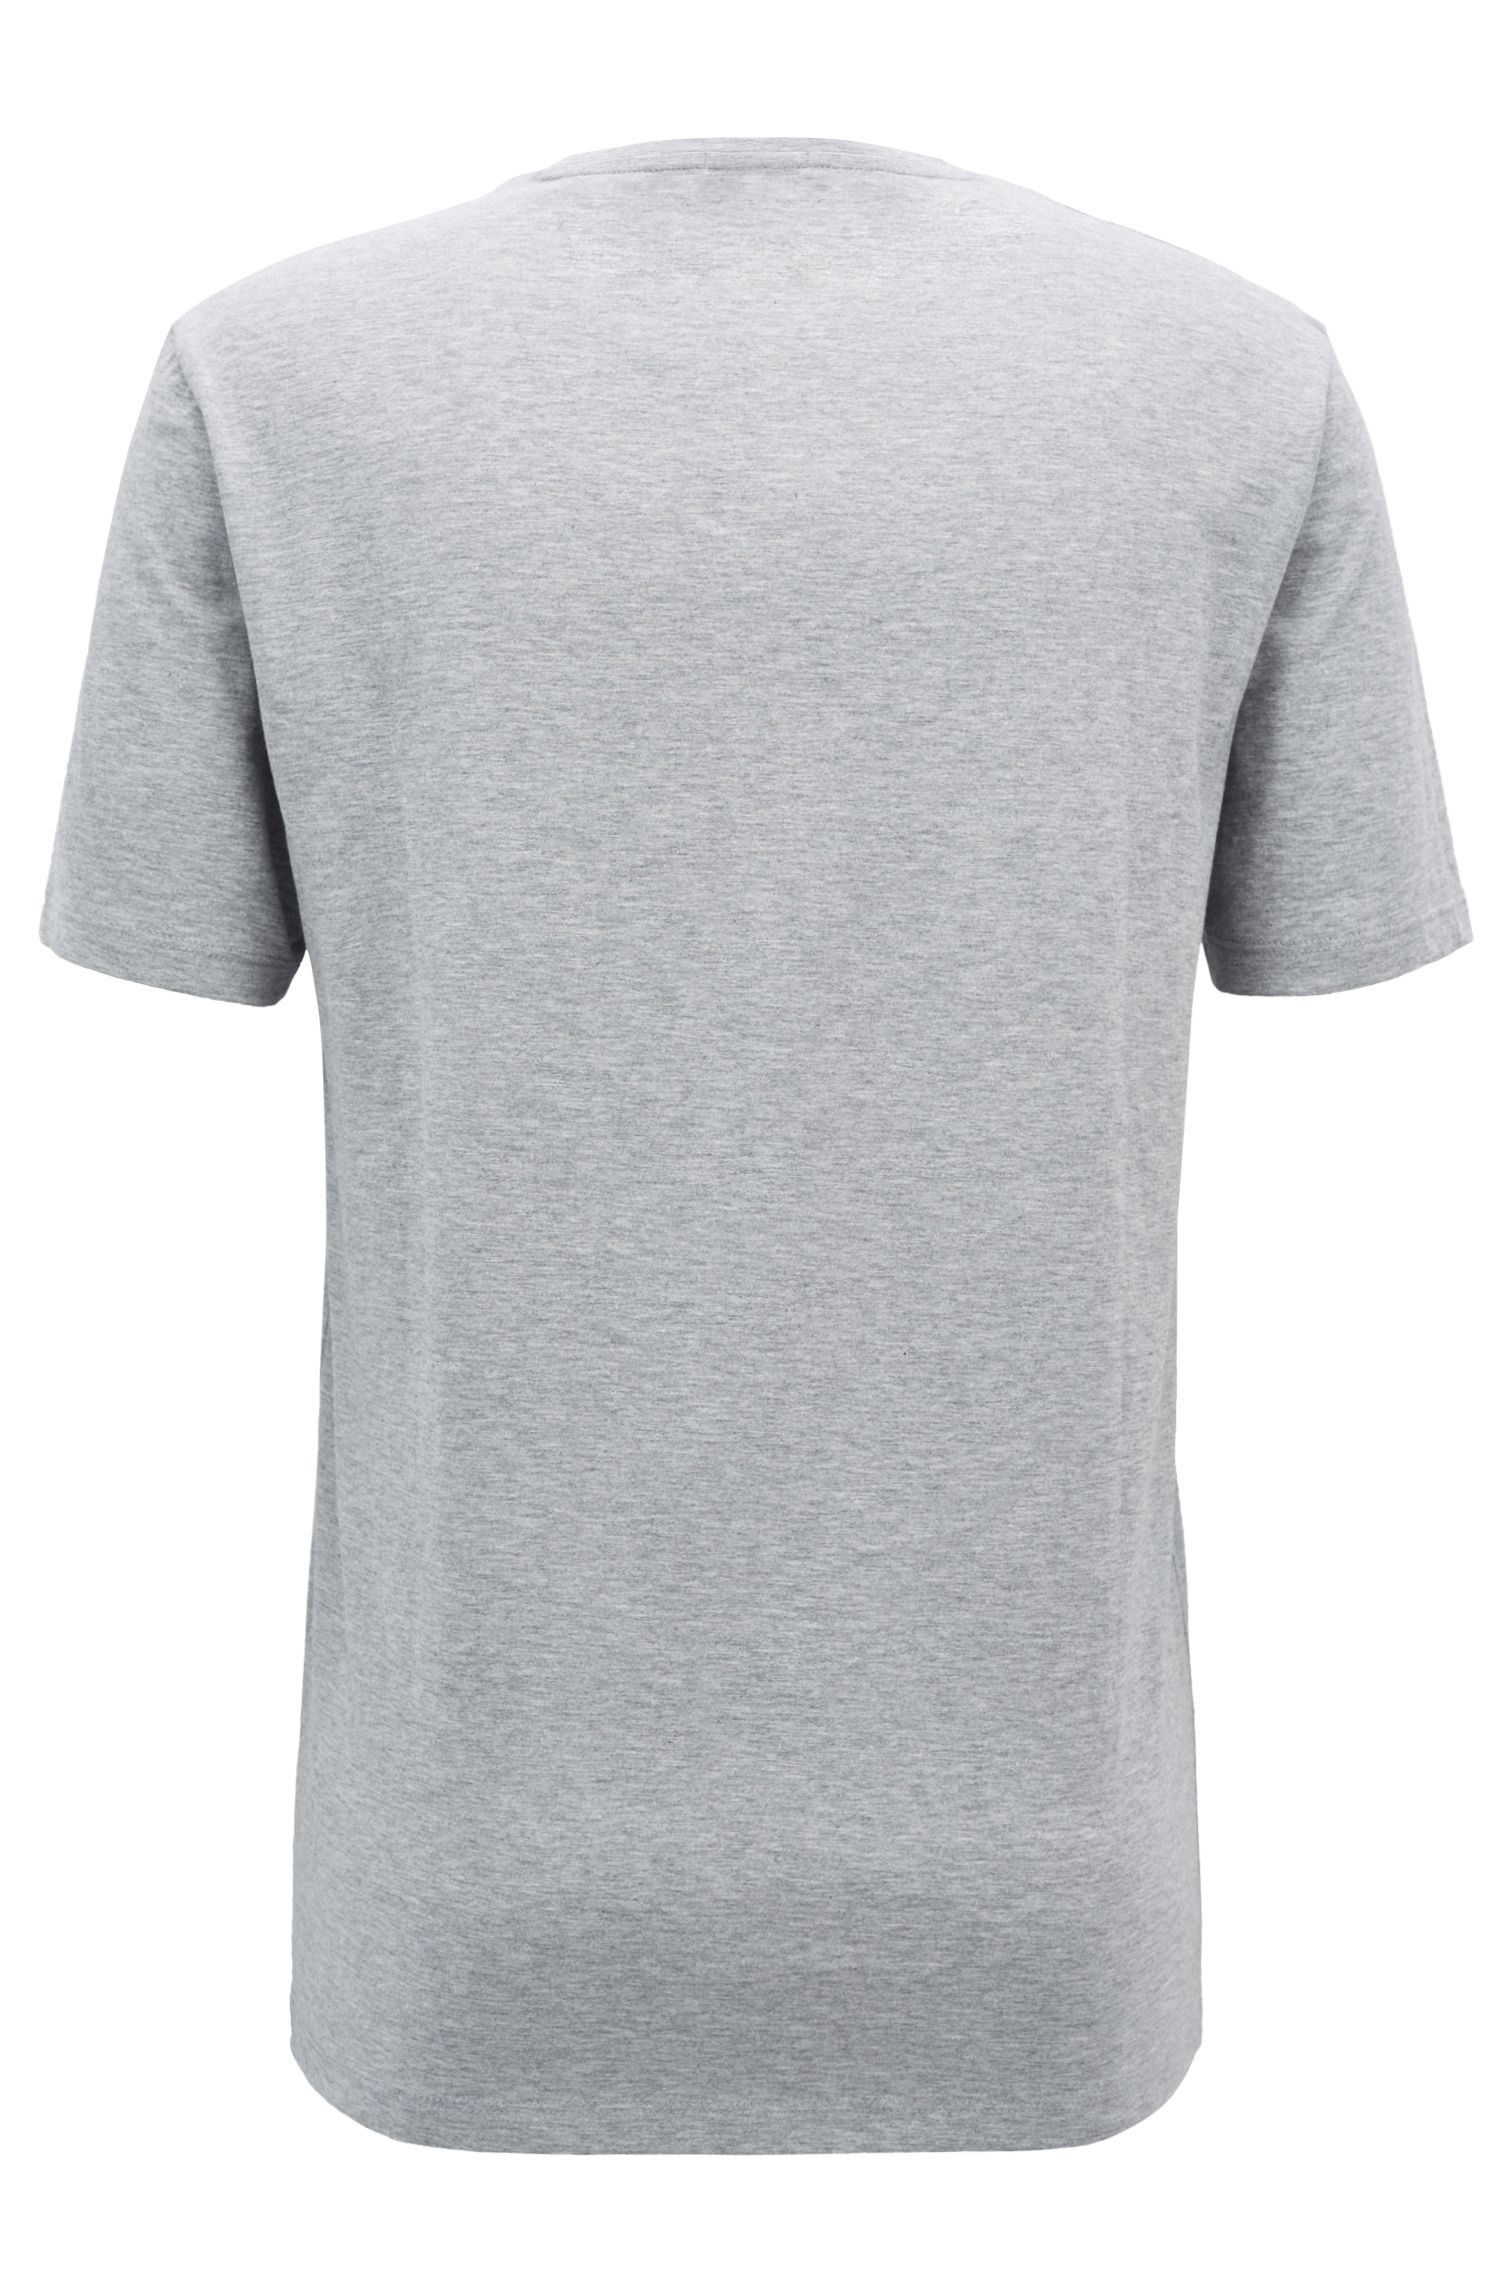 T-shirt Regular Fit avec logo imprimé bicolore, Gris